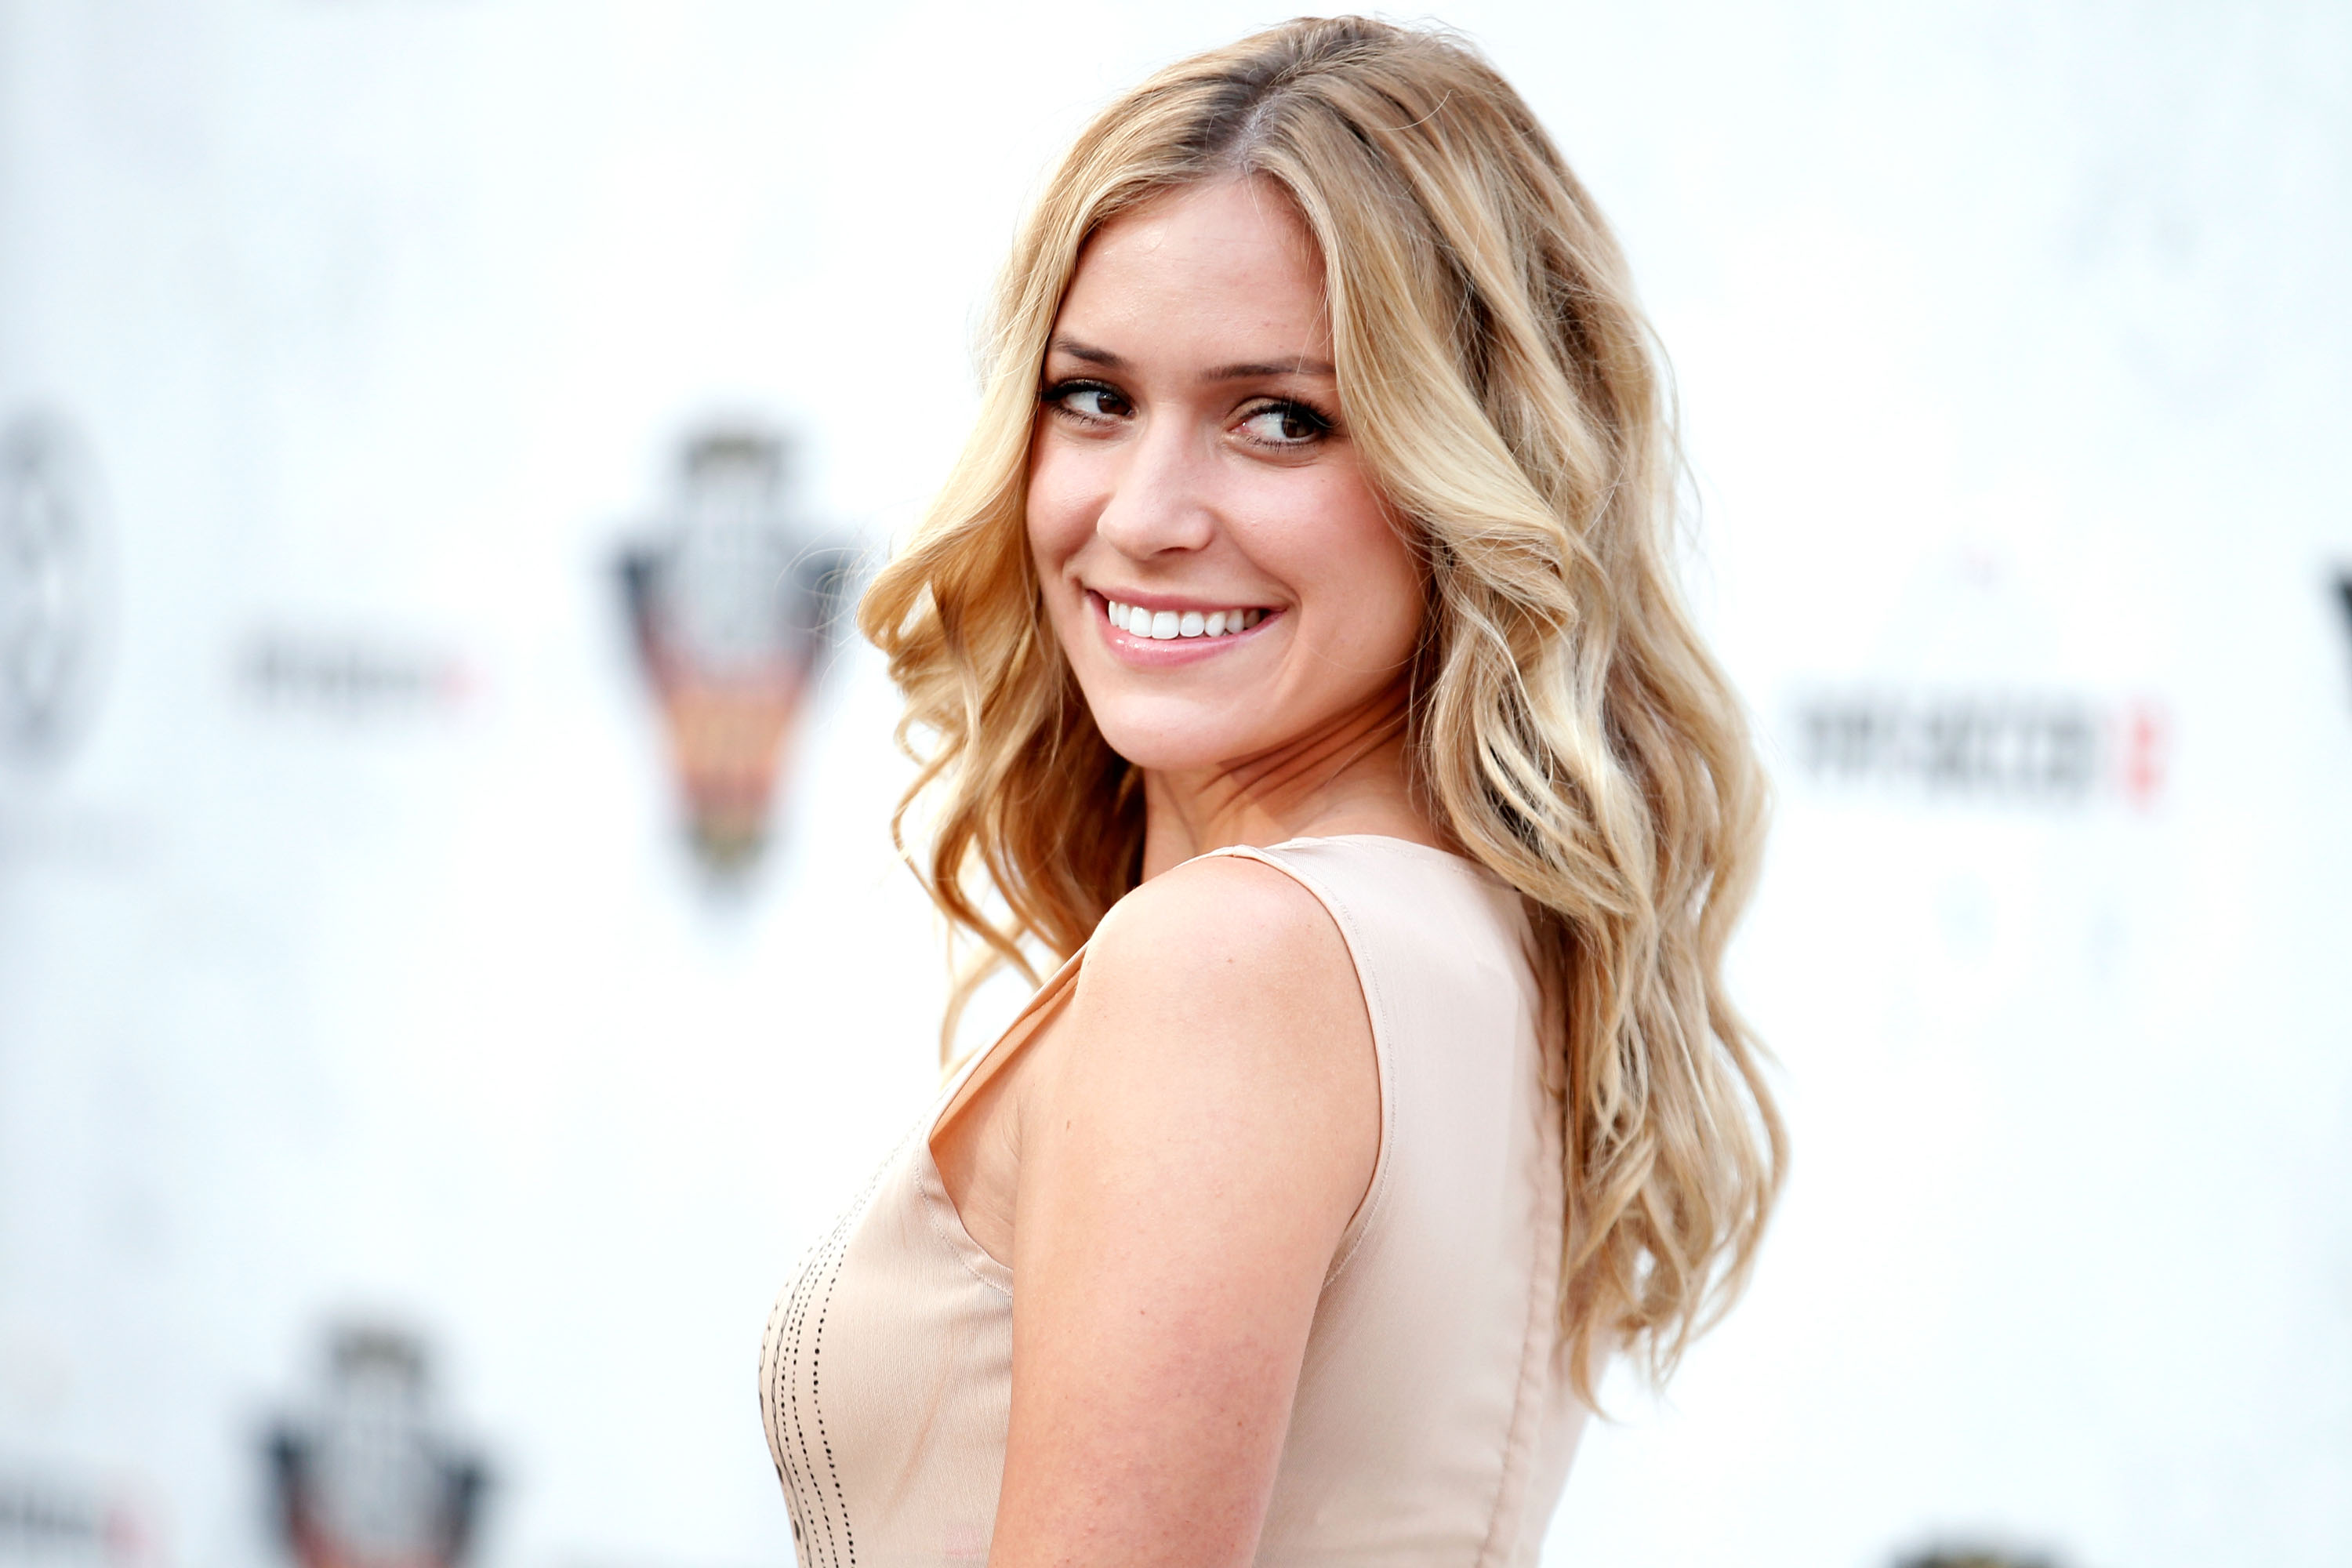 TV personality Kristin Cavallari arrives at Comedy Central's Roast of Charlie Sheen held at Sony Studios on September 10, 2011 in Los Angeles, California (Getty Images)